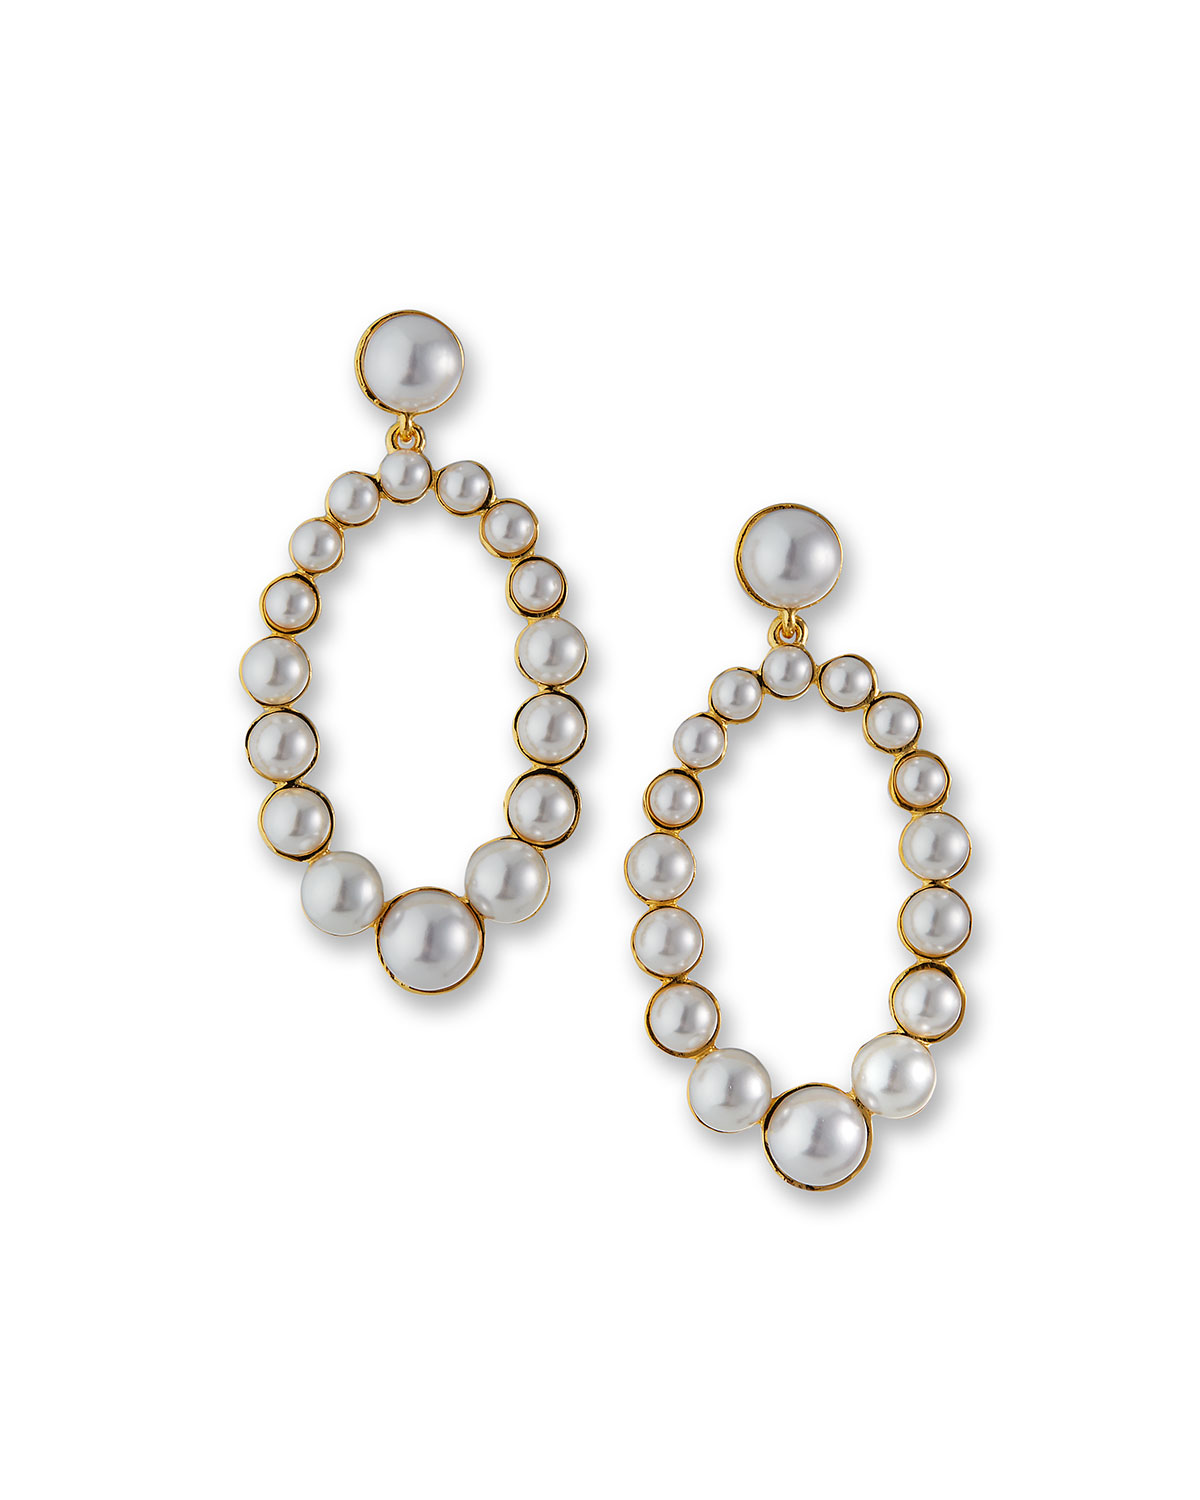 Graduated Oval Drop Earrings with Simulated Pearls